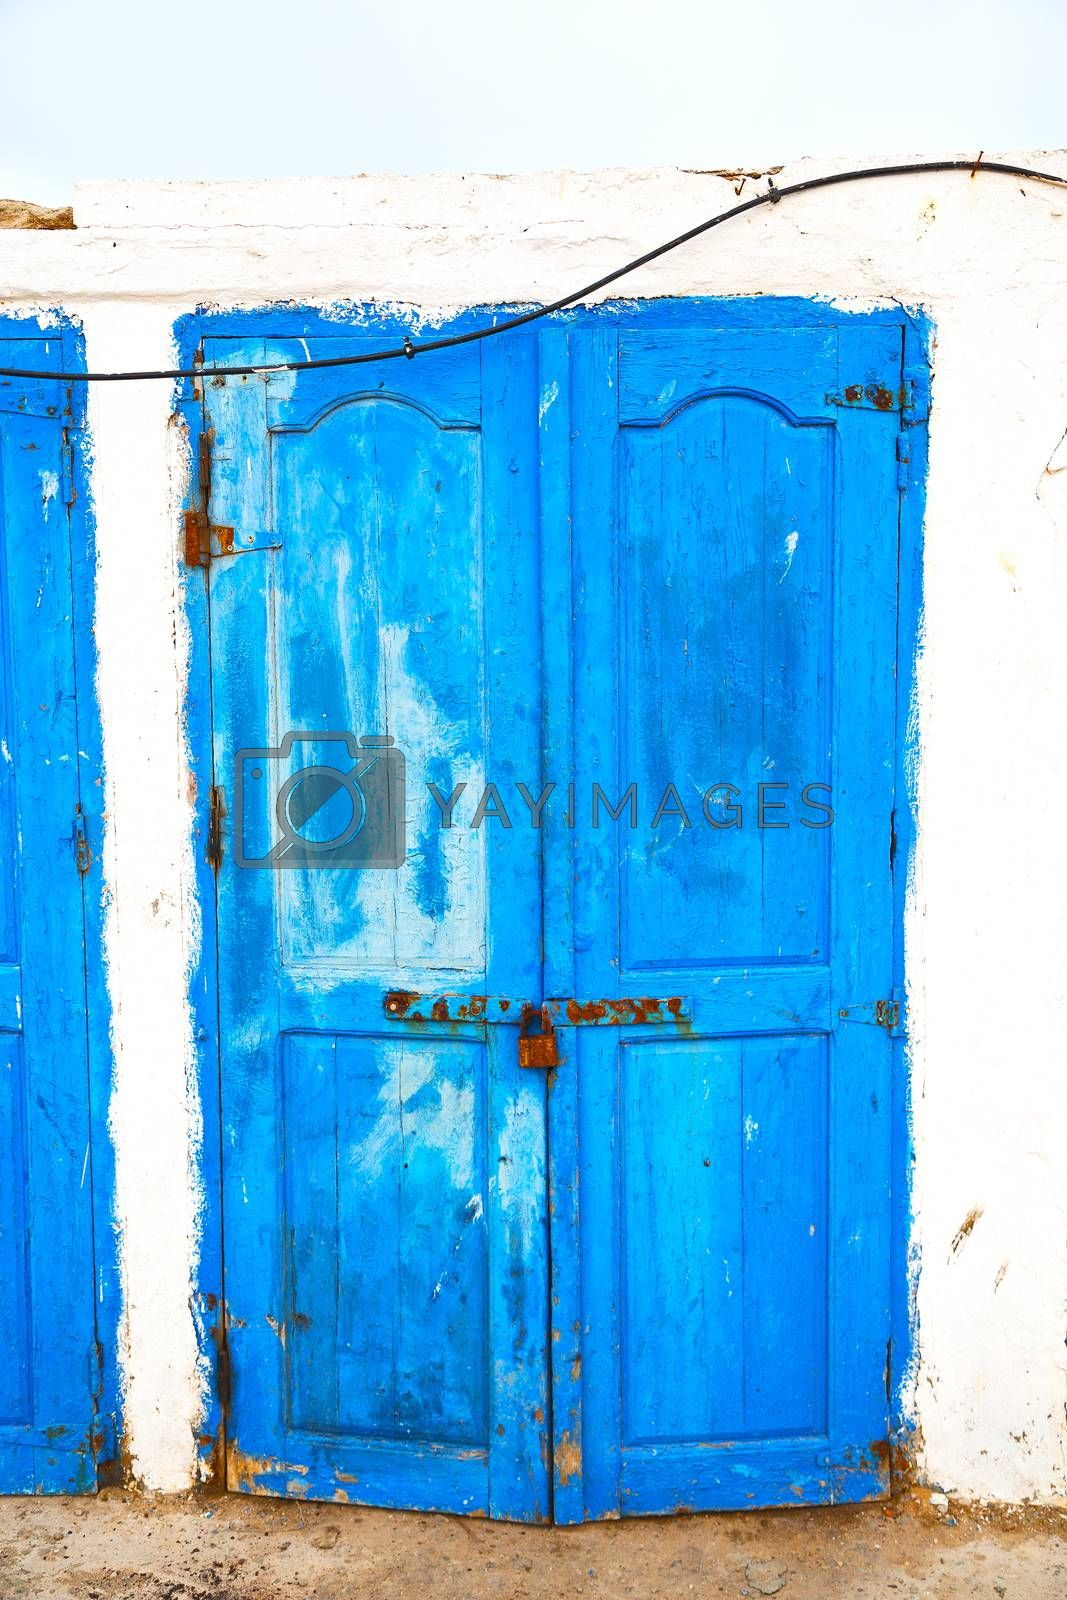 in africa   old harbor wood   door and the blue sky by lkpro